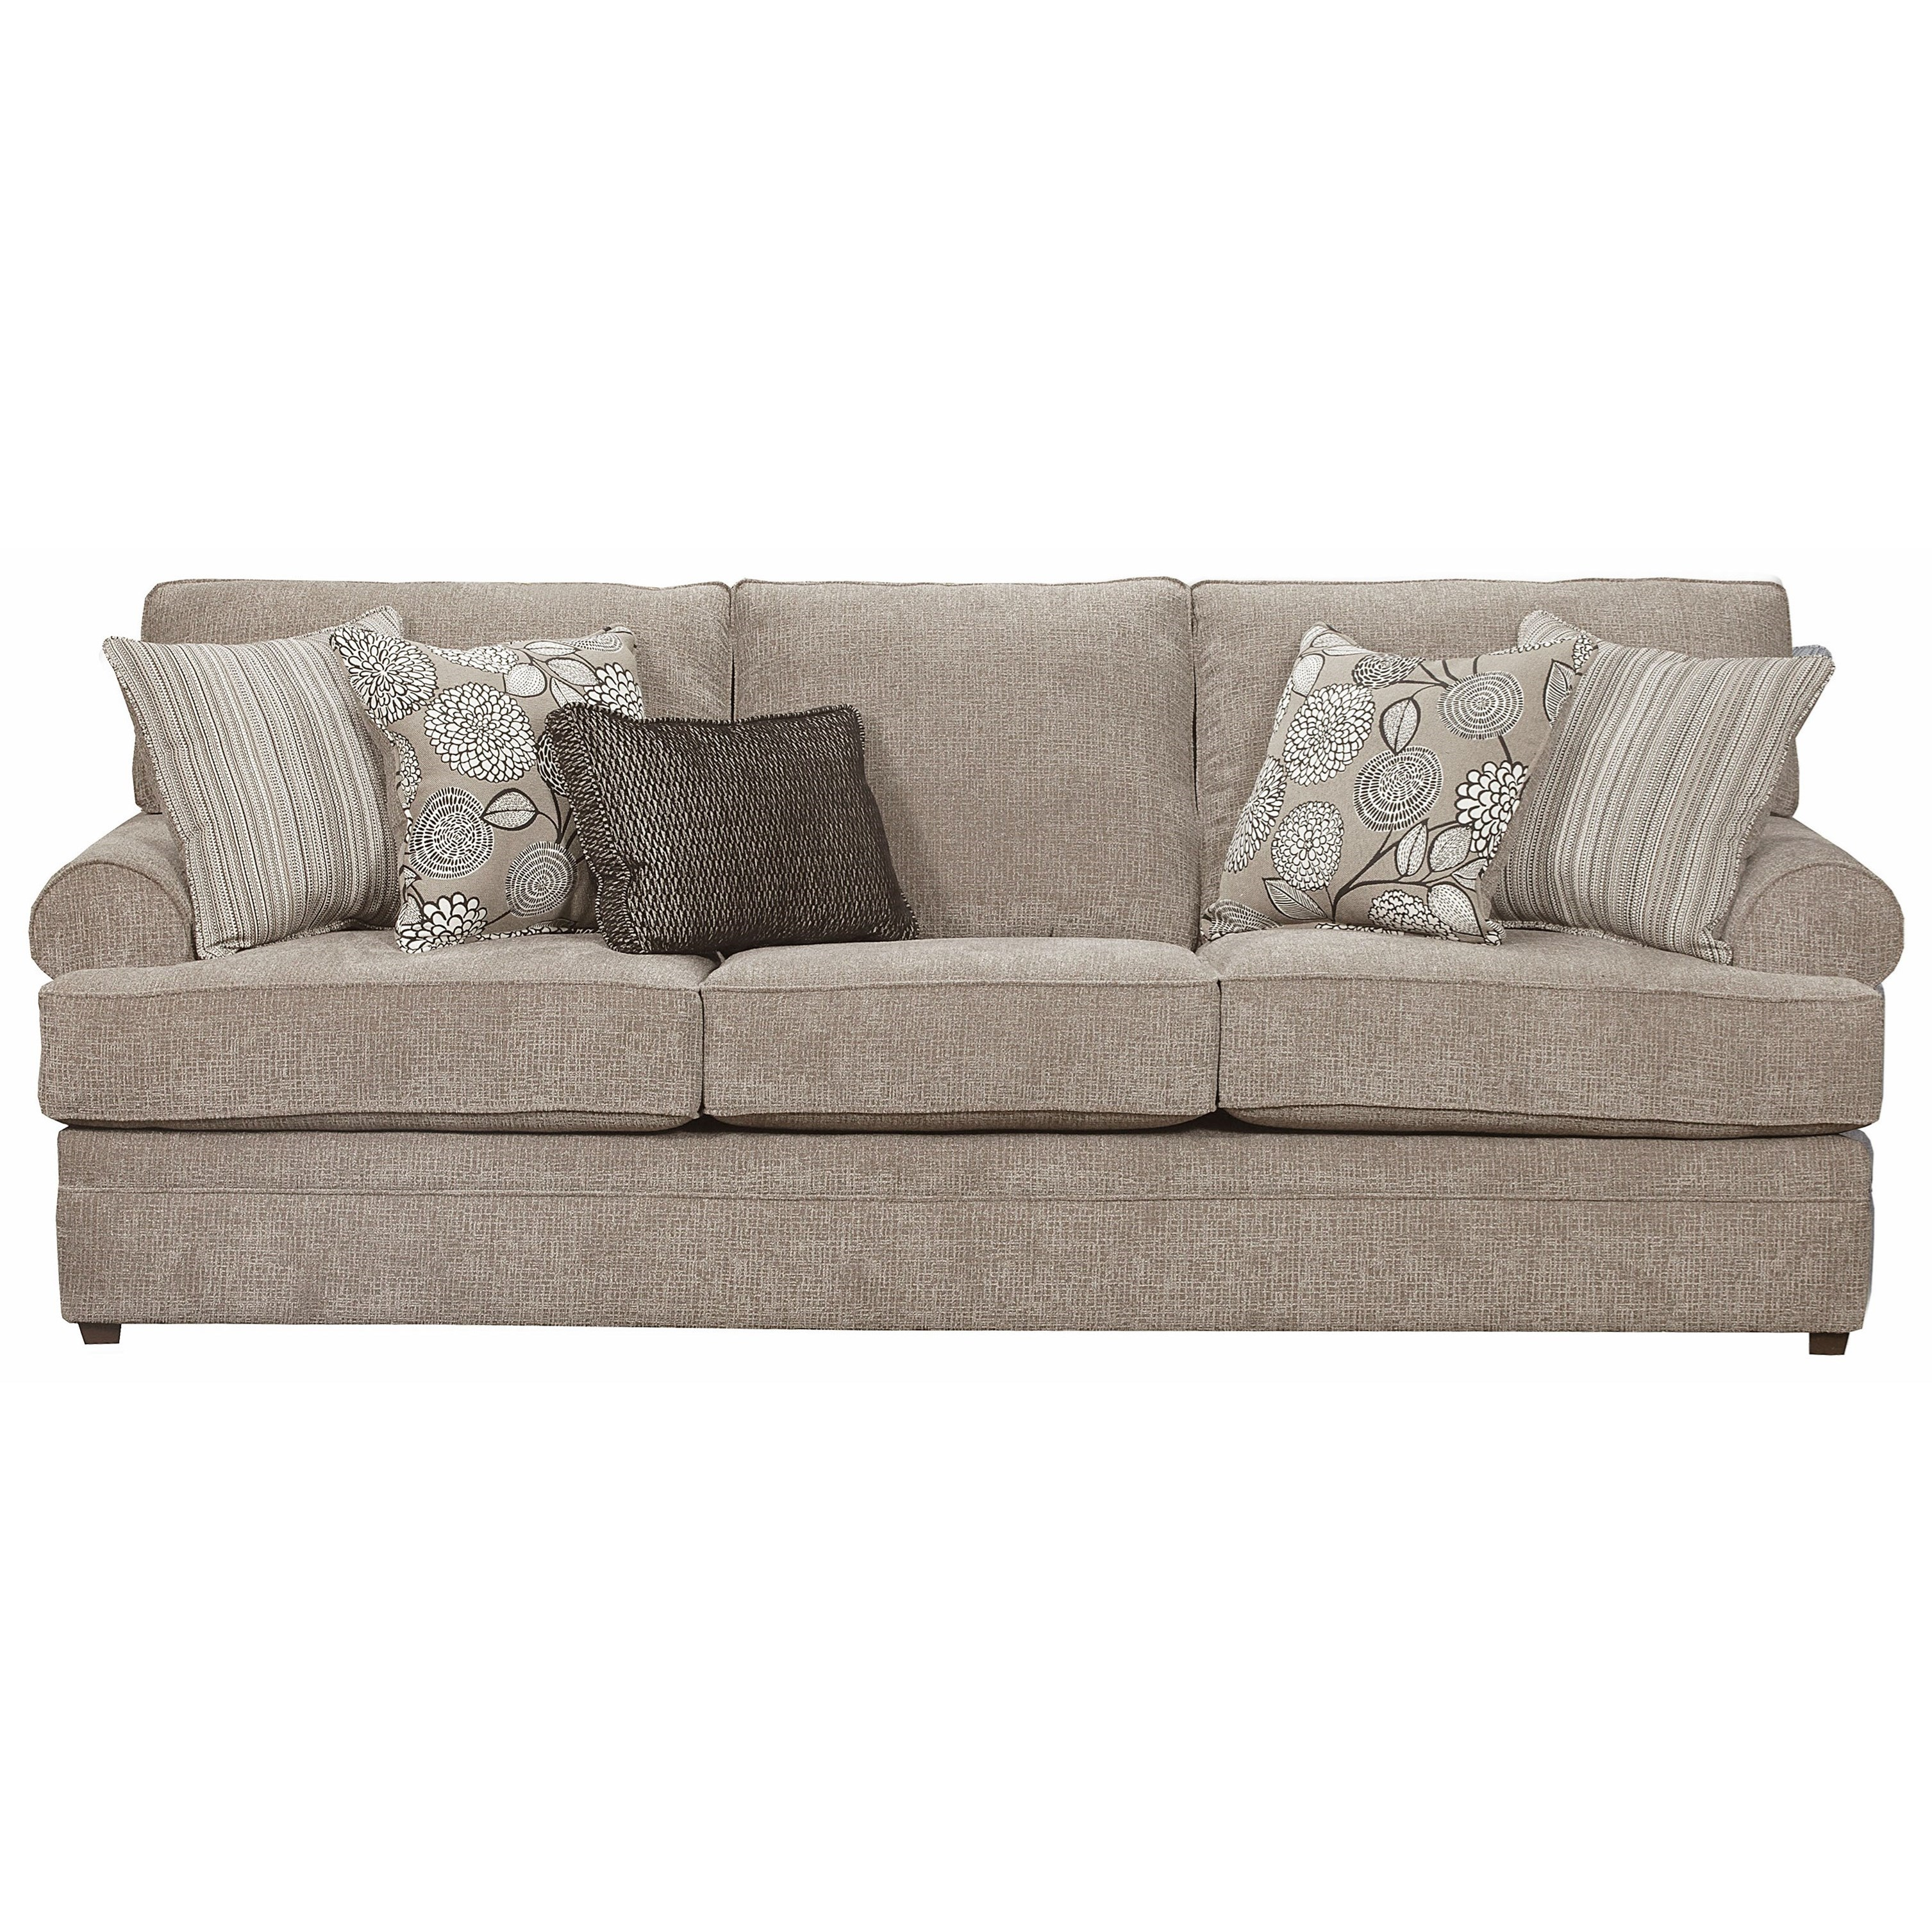 8530 BR Transitional Sofa by United Furniture Industries at Pilgrim Furniture City